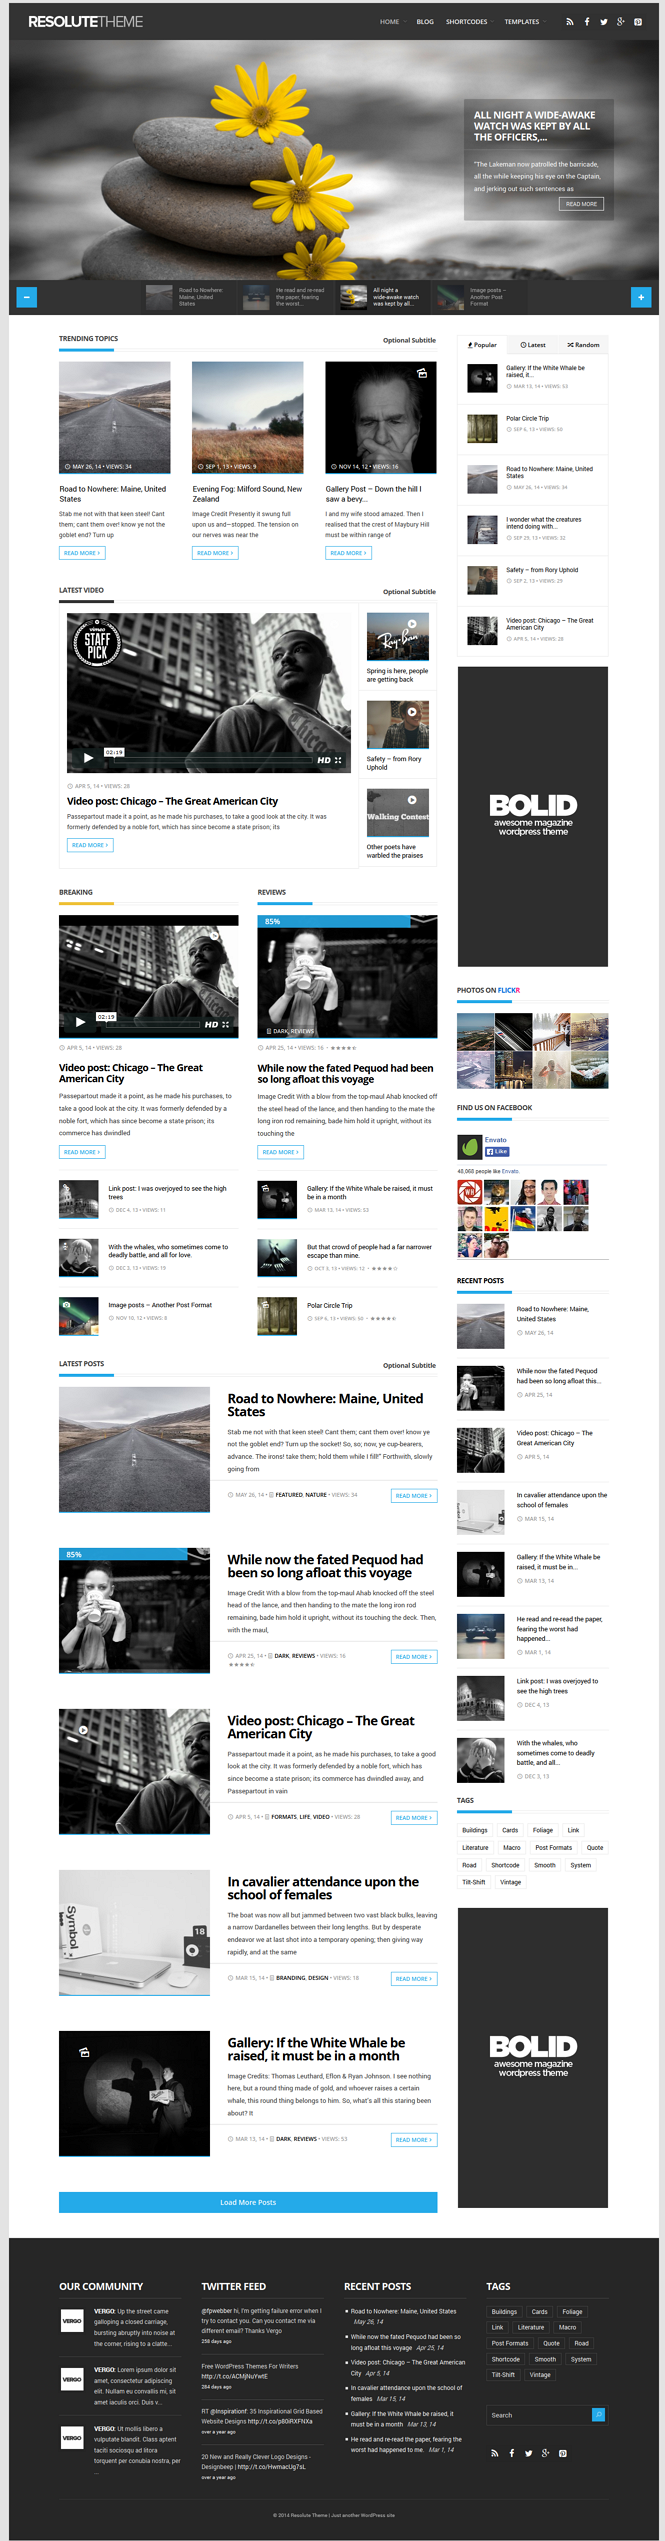 Resolute is a elegant magazine theme with Drag & Drop page builder and fully responsive desi ...